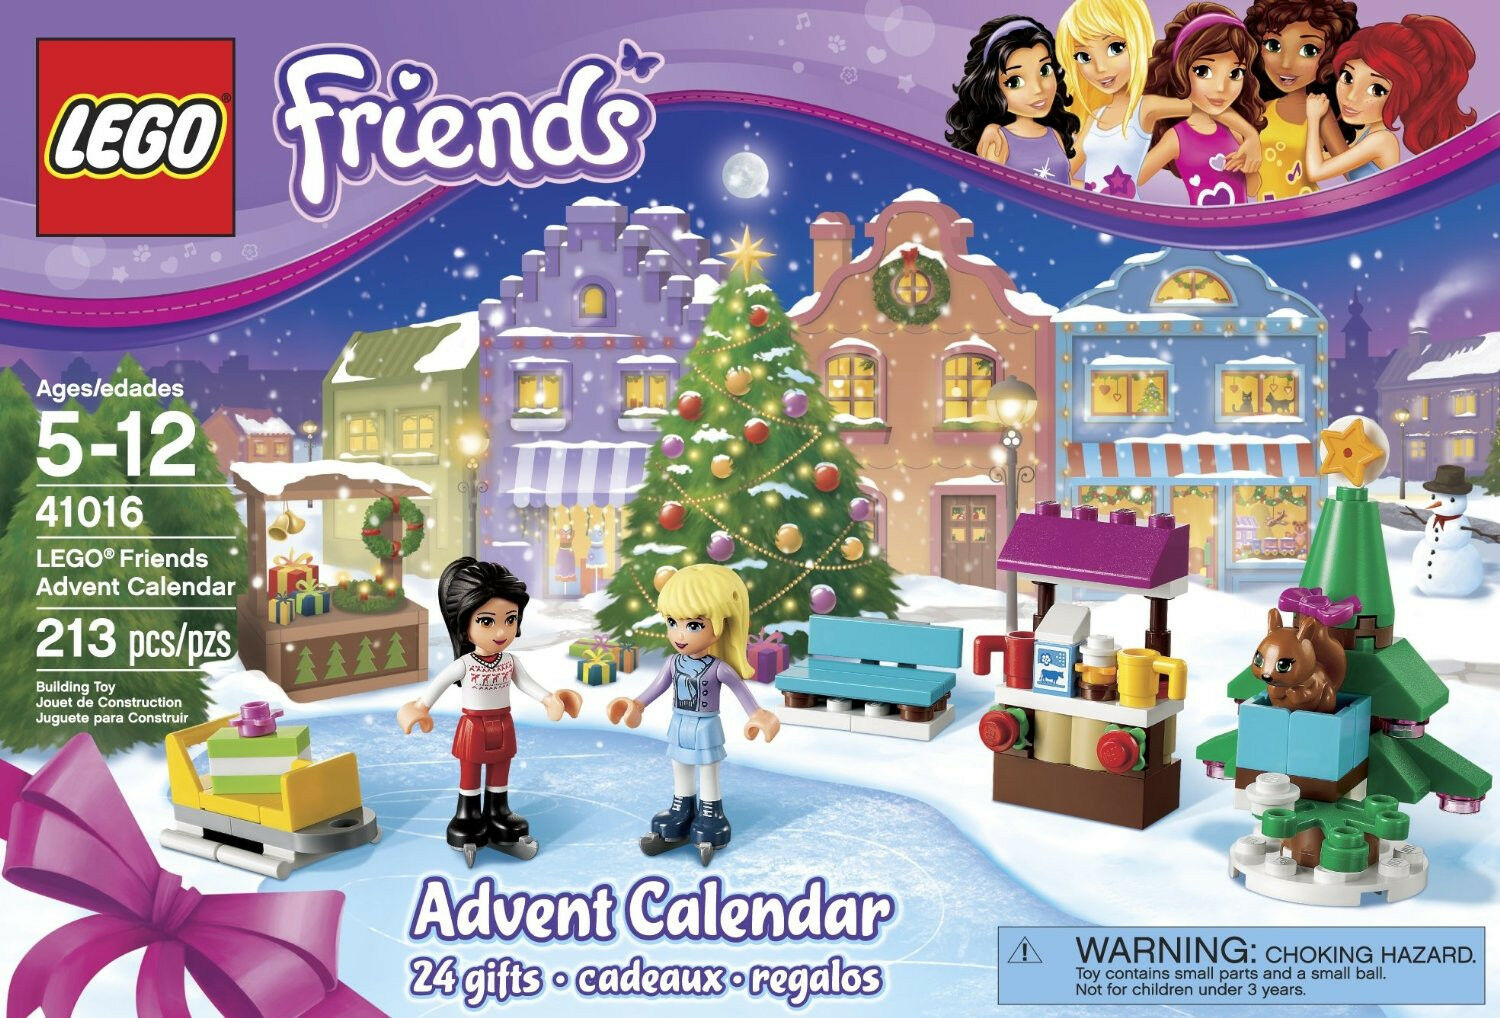 LEGO 2013 Friends Advent Calendar 41016